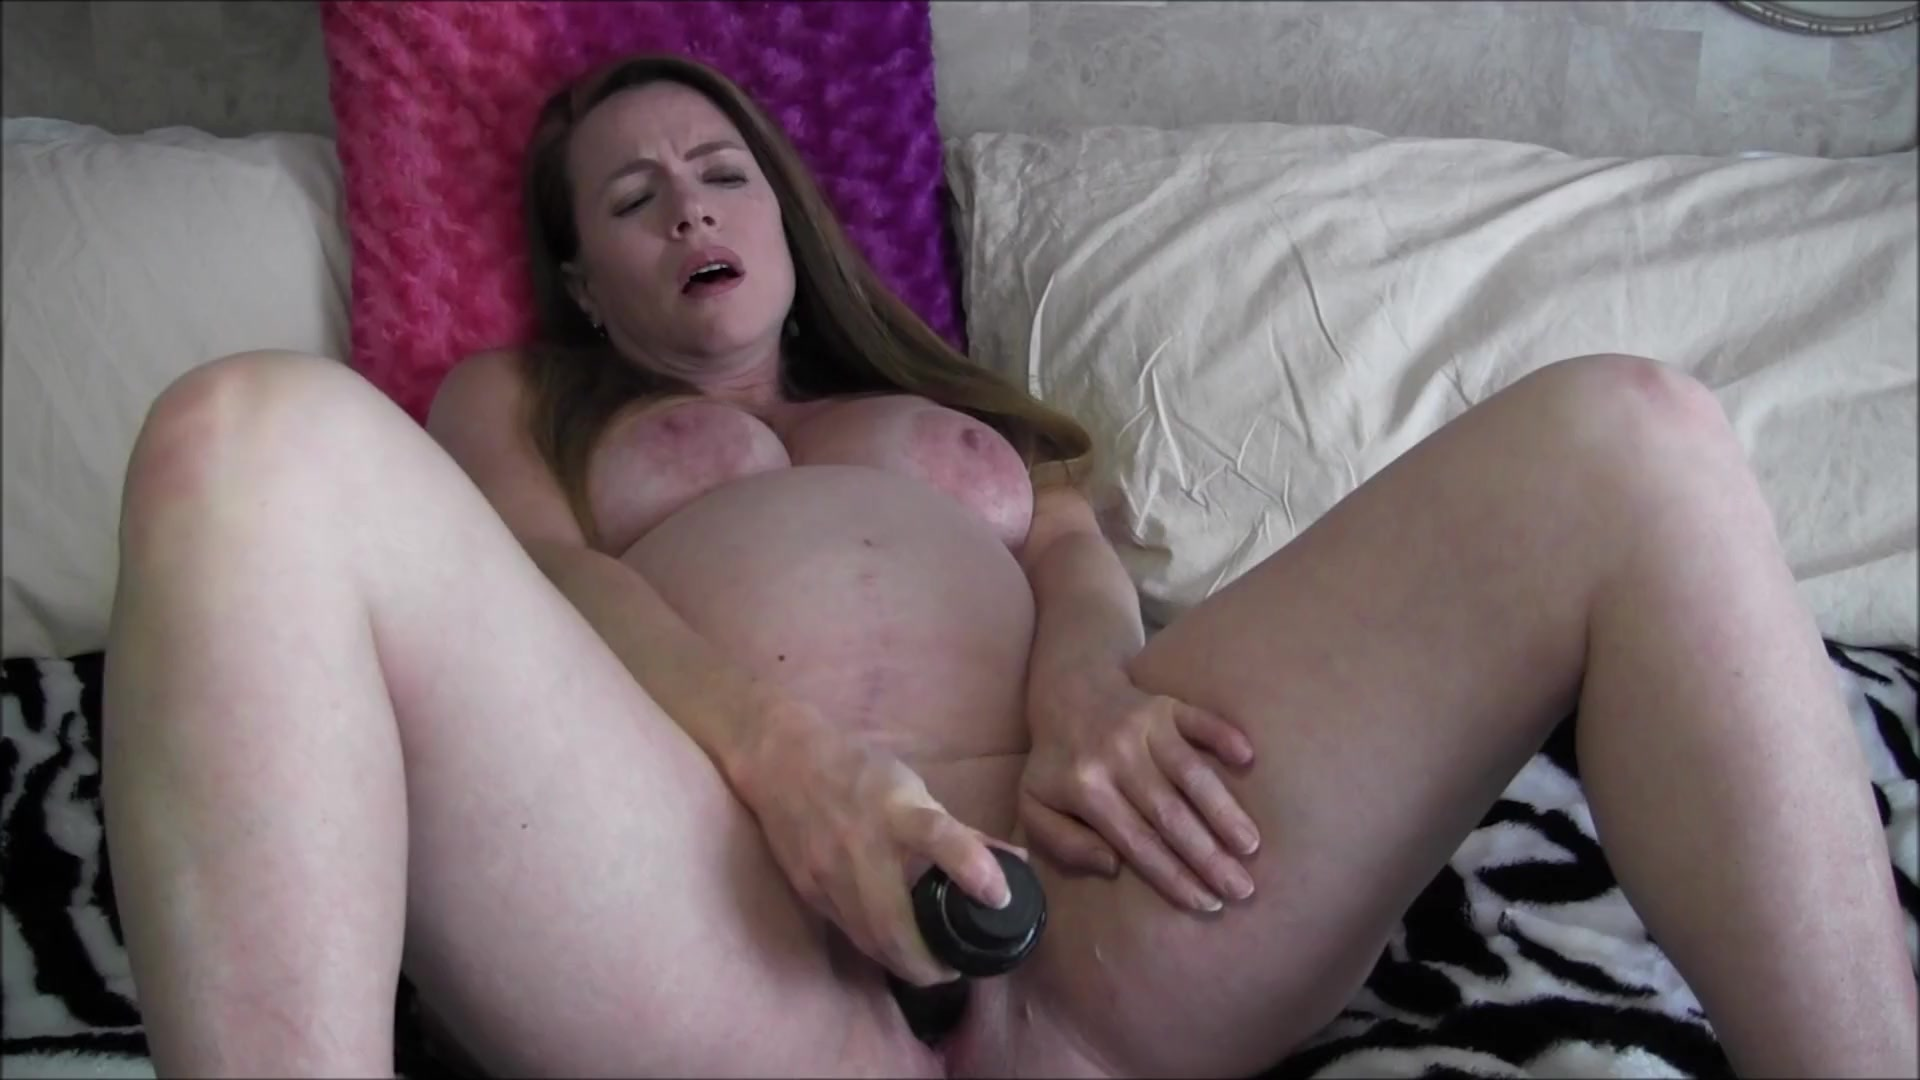 Ex-wife sexy photo submissions